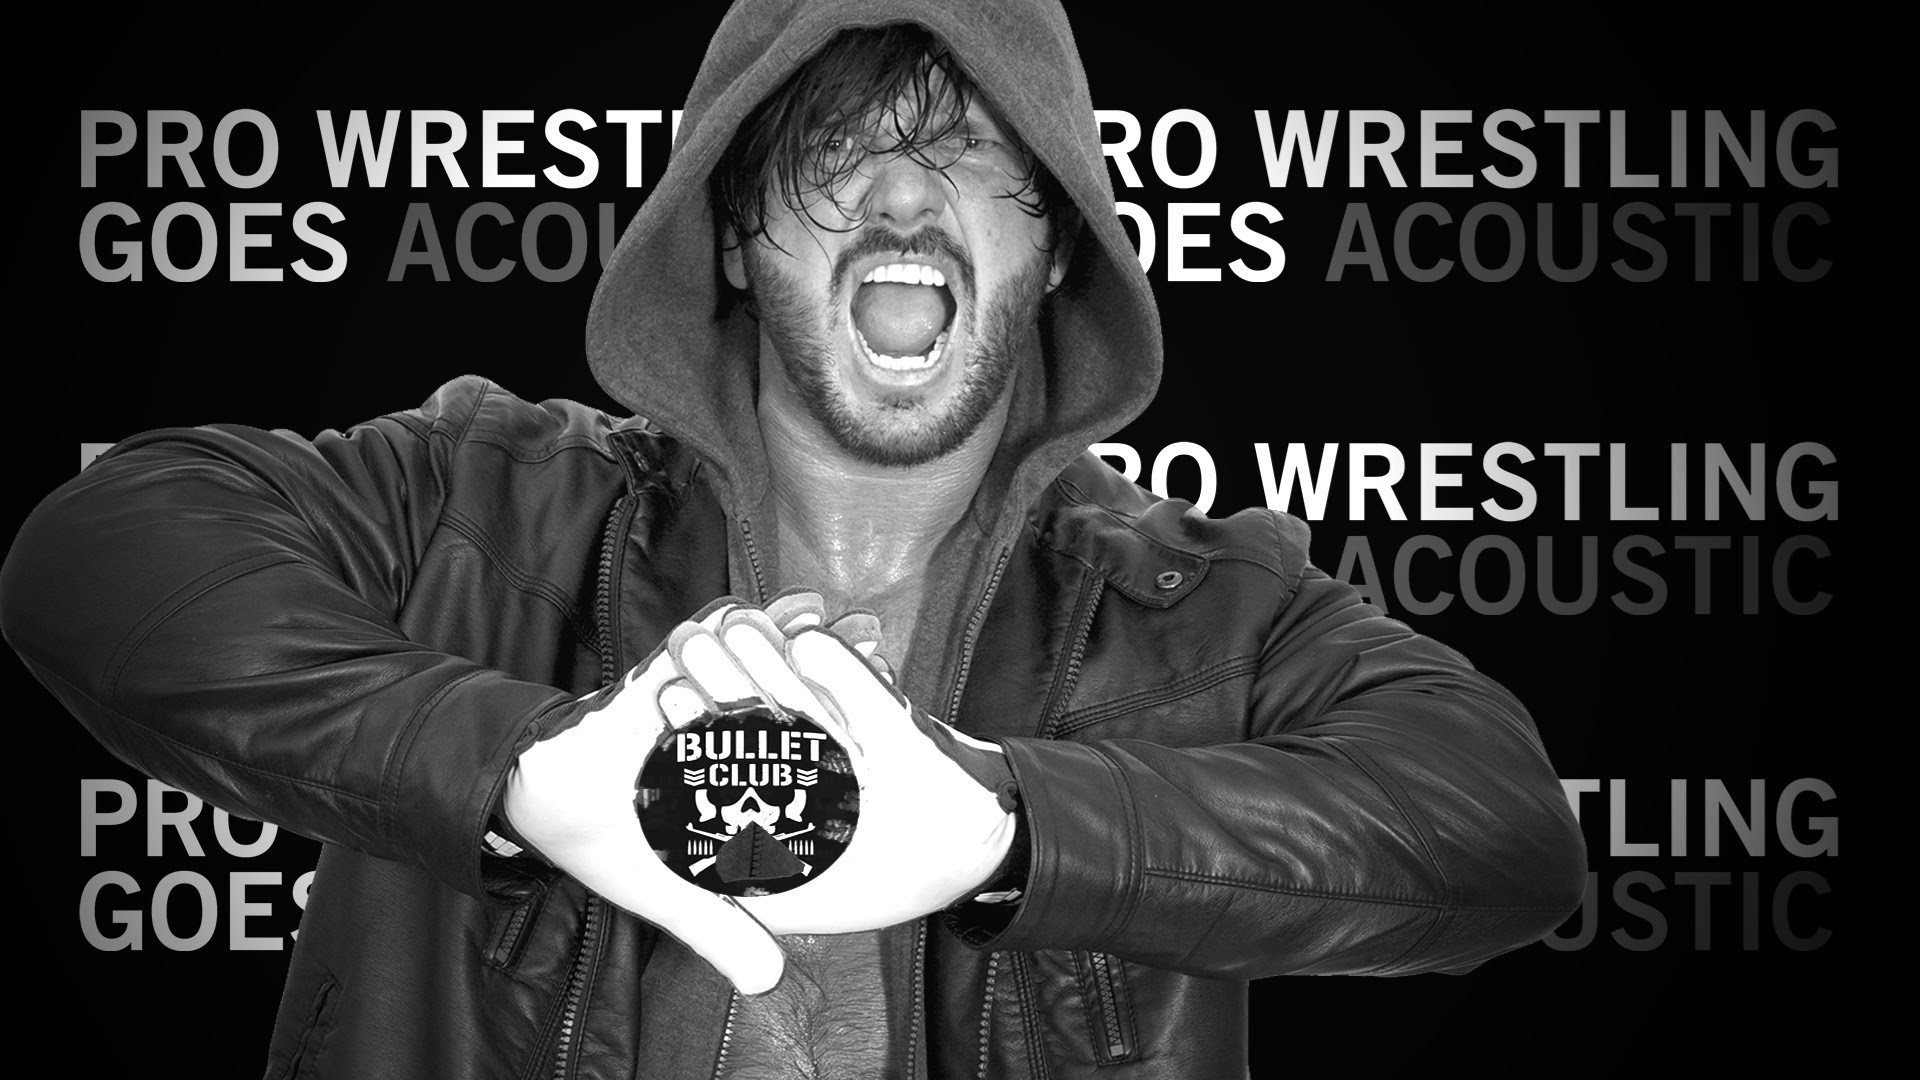 Bullet Club Theme Song (NJPW Acoustic Cover) – Pro Wrestling Goes Acoustic  – YouTube